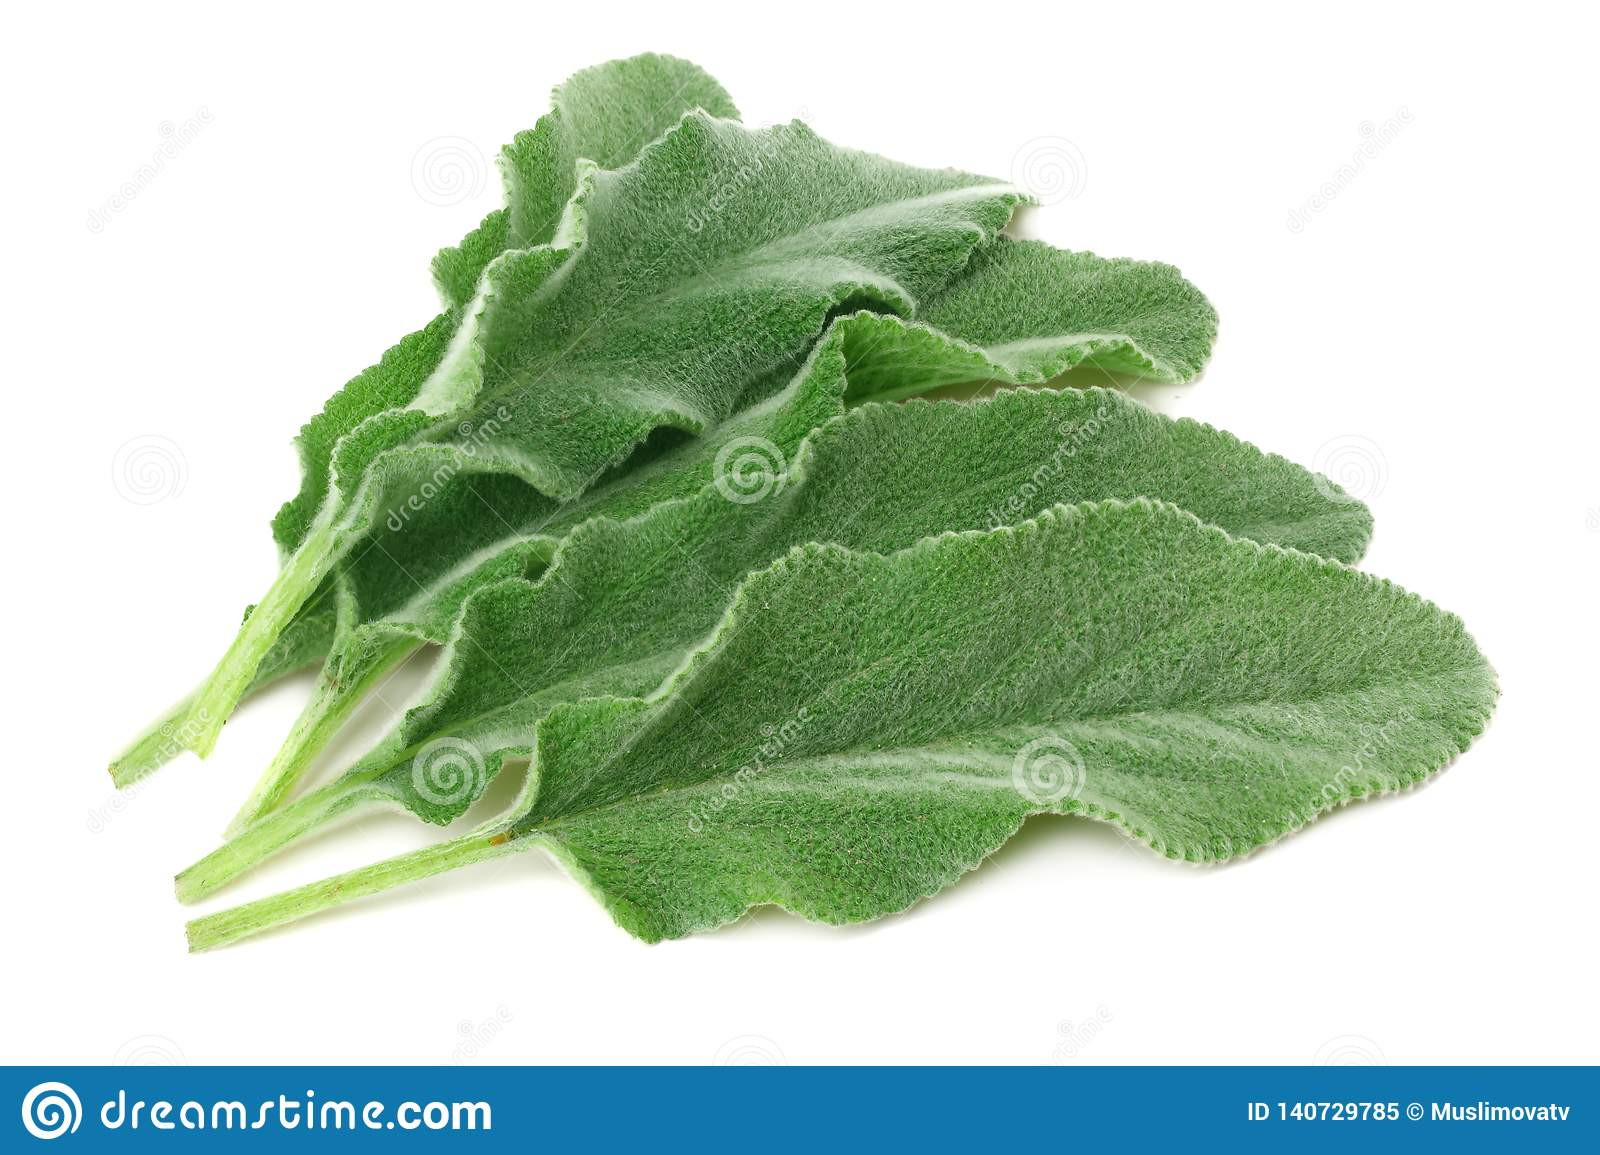 sage leaves isolated on white background. green leaves